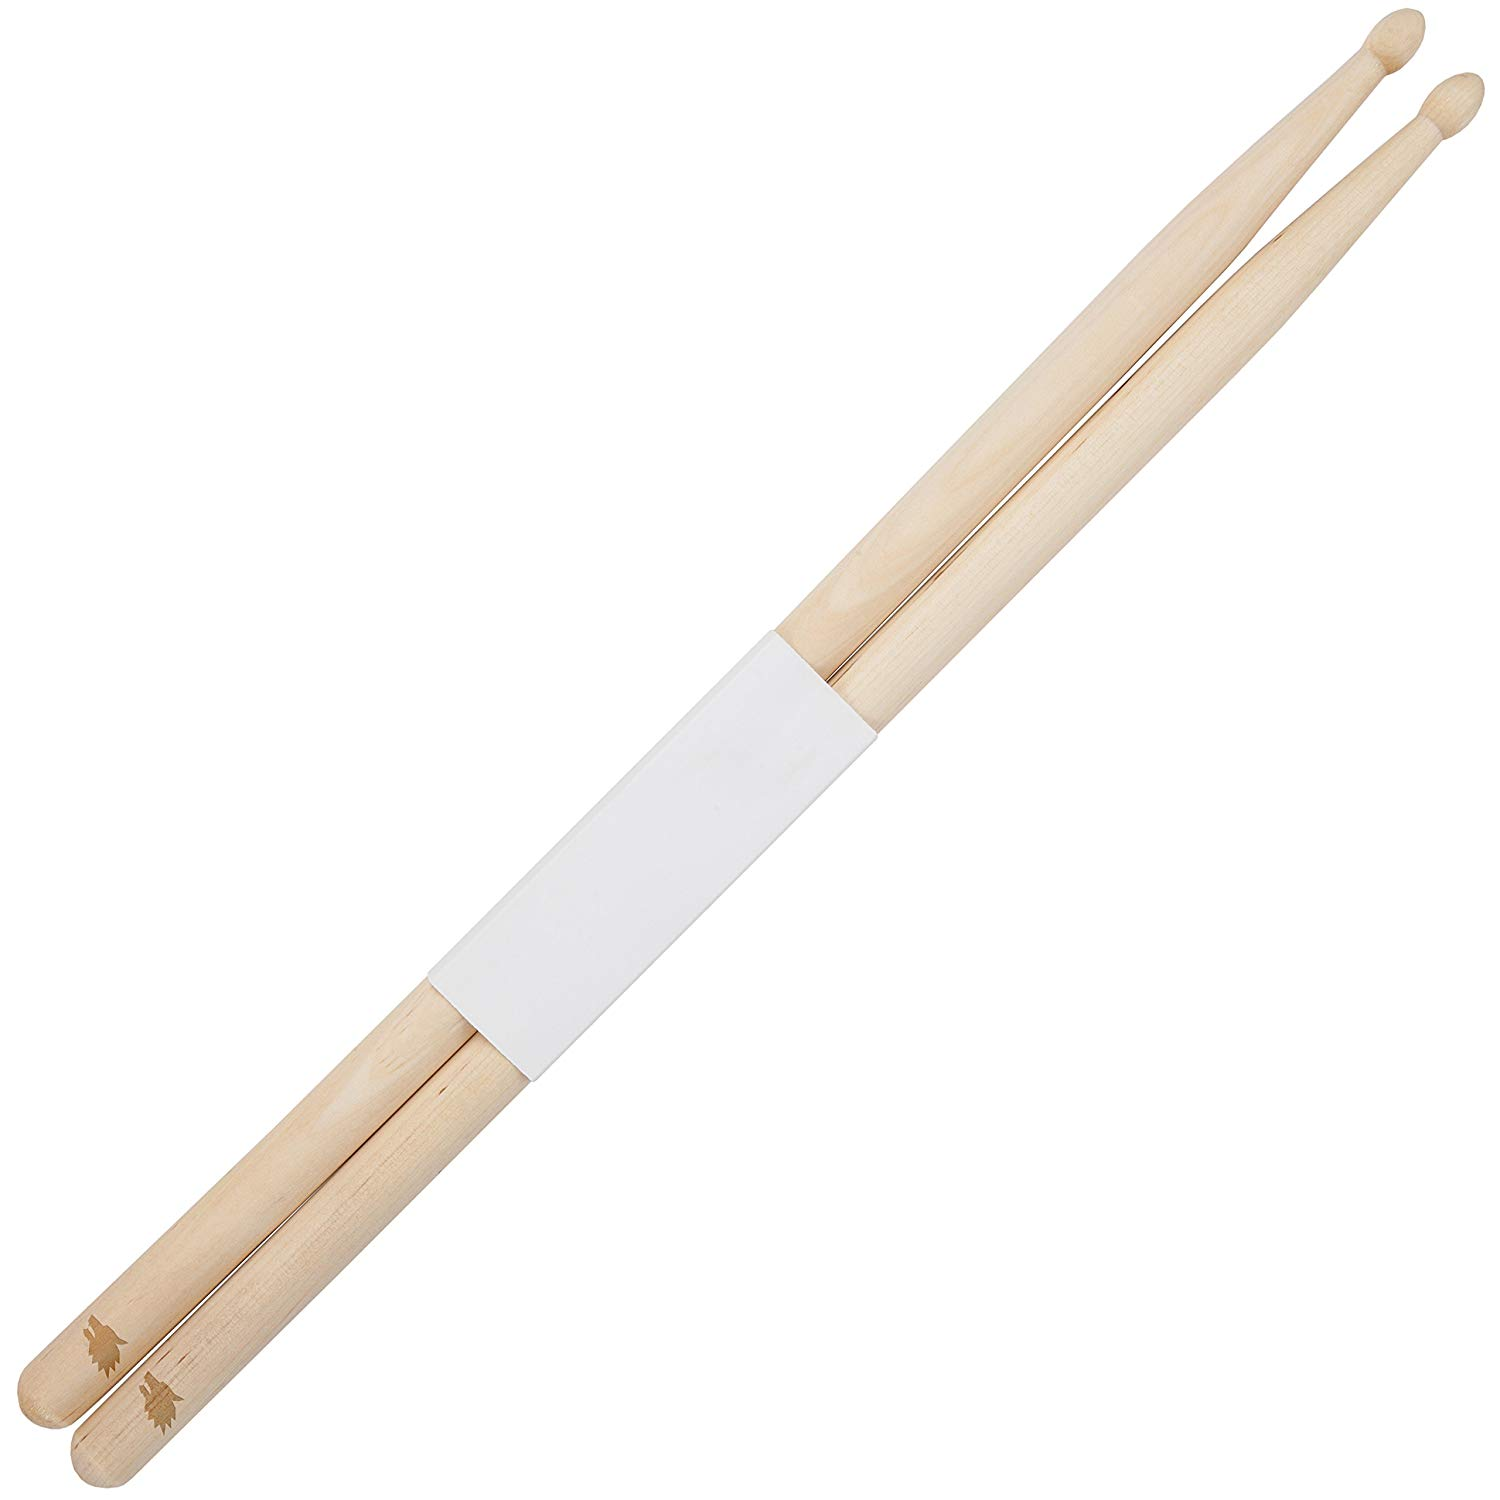 Wolf 5B Maple Drumsticks With Laser Engraved Design - Durable Drumstick Set With Wooden Tip - Wood Drumsticks Gift